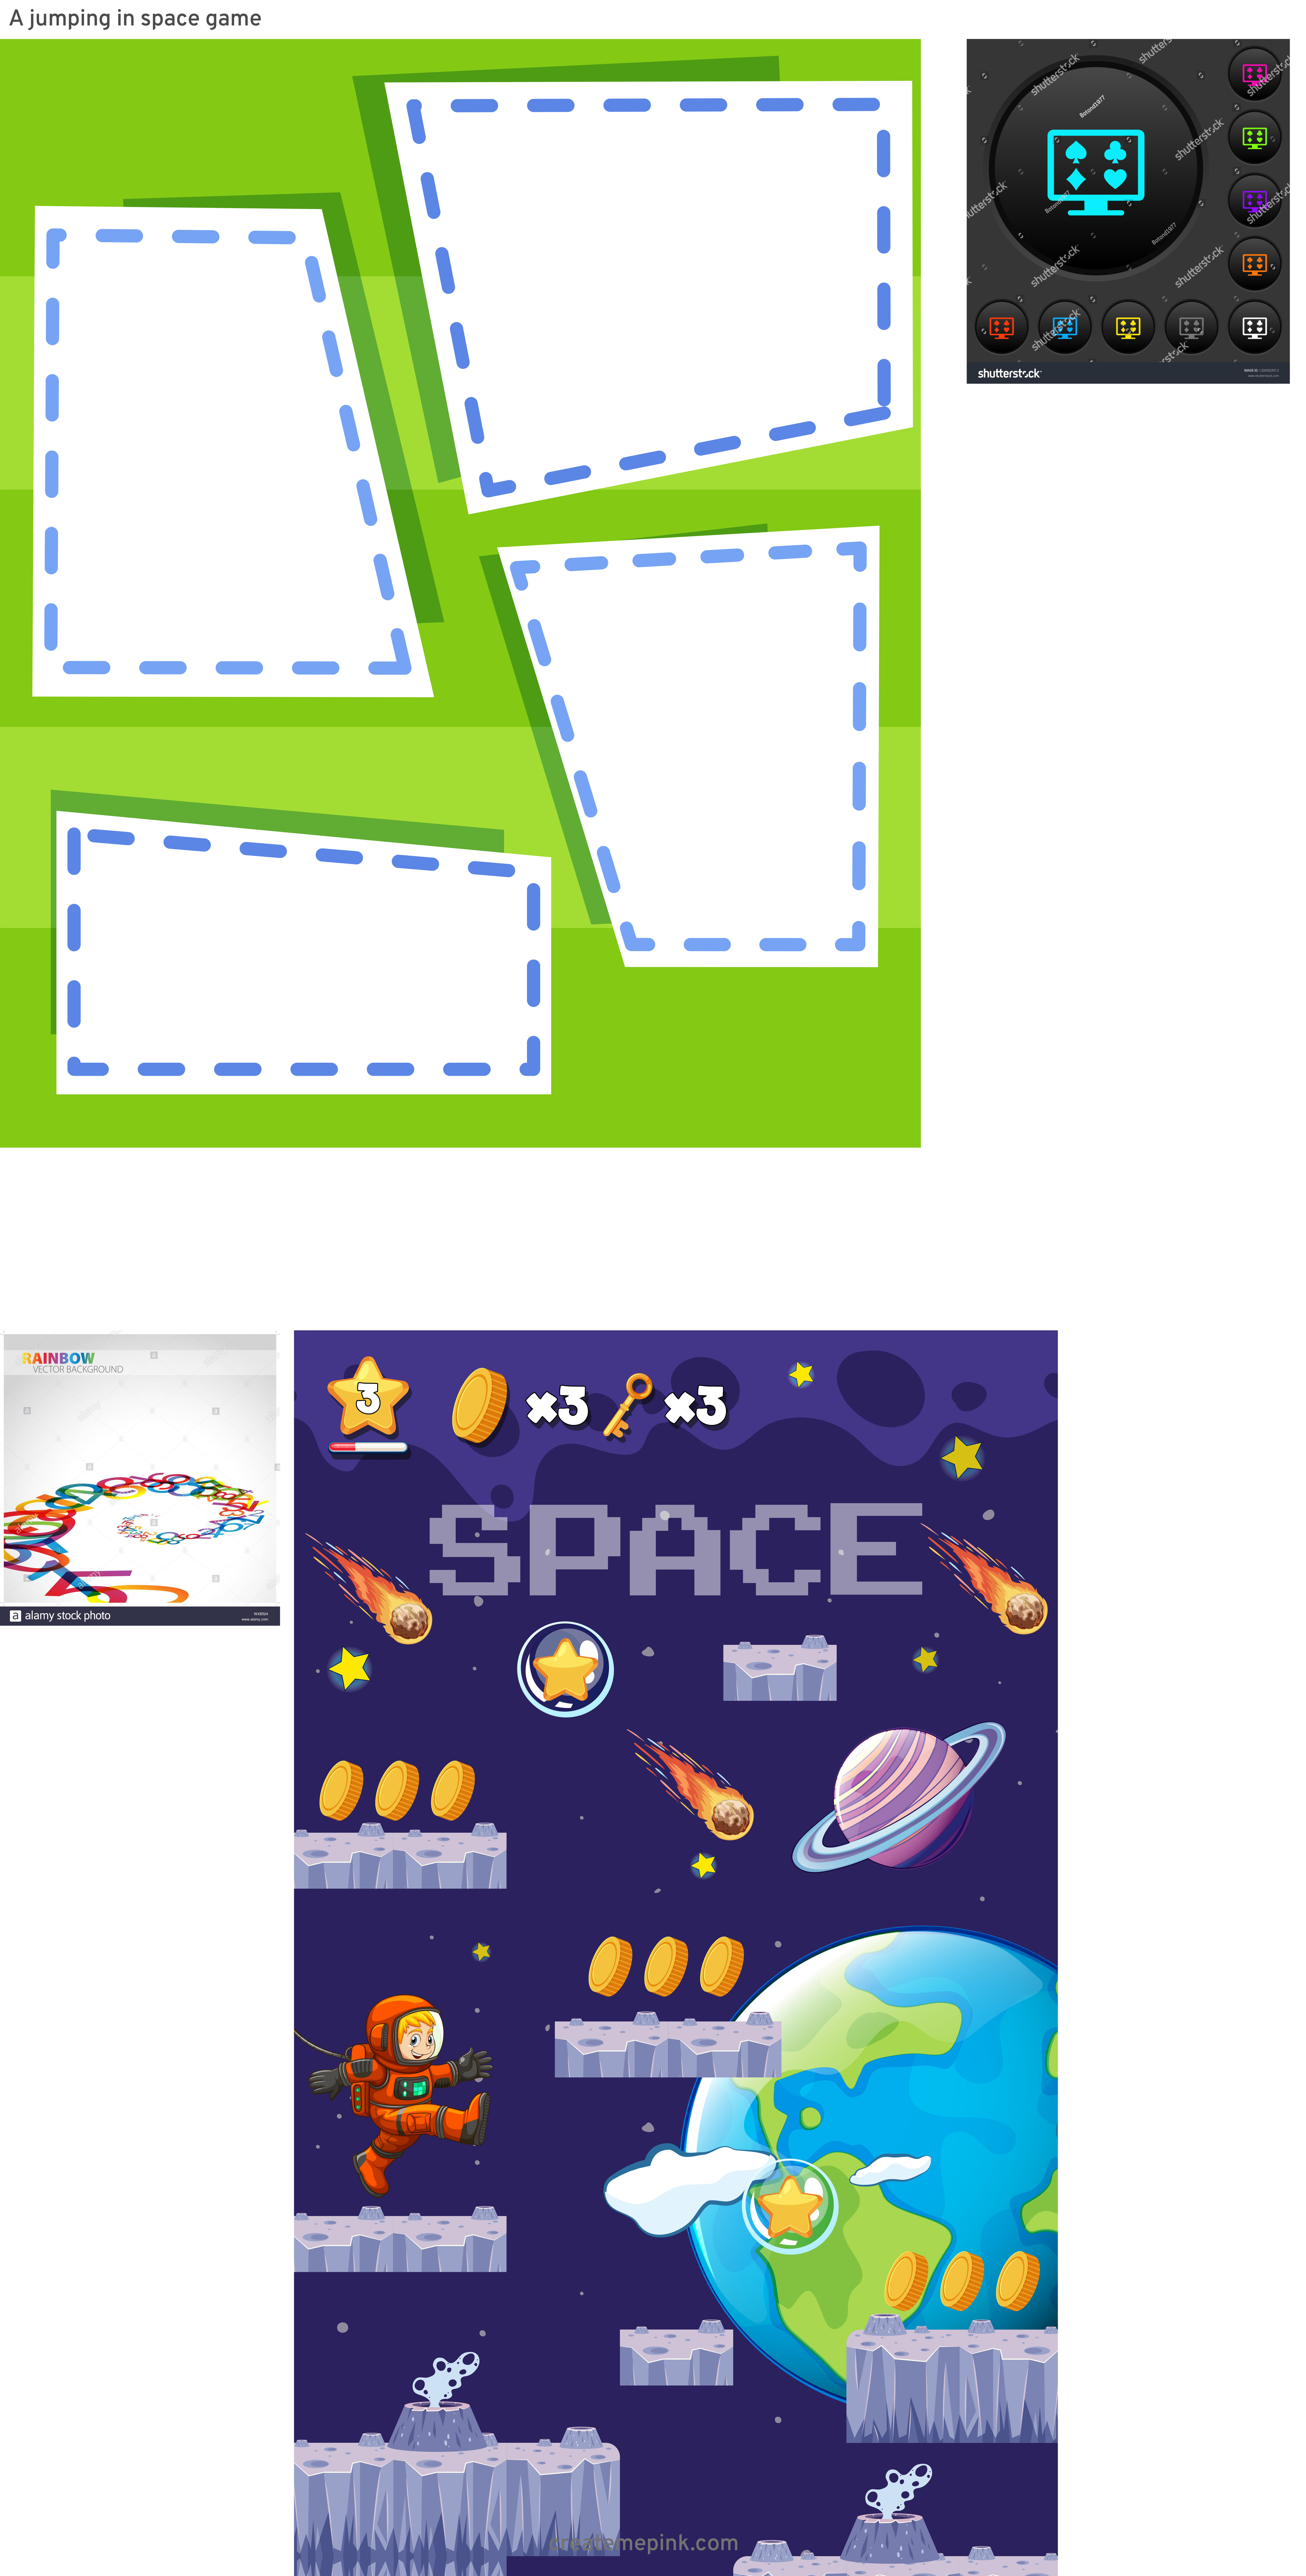 Casino Backgrounds Stock Vector Vivid: A Jumping In Space Game